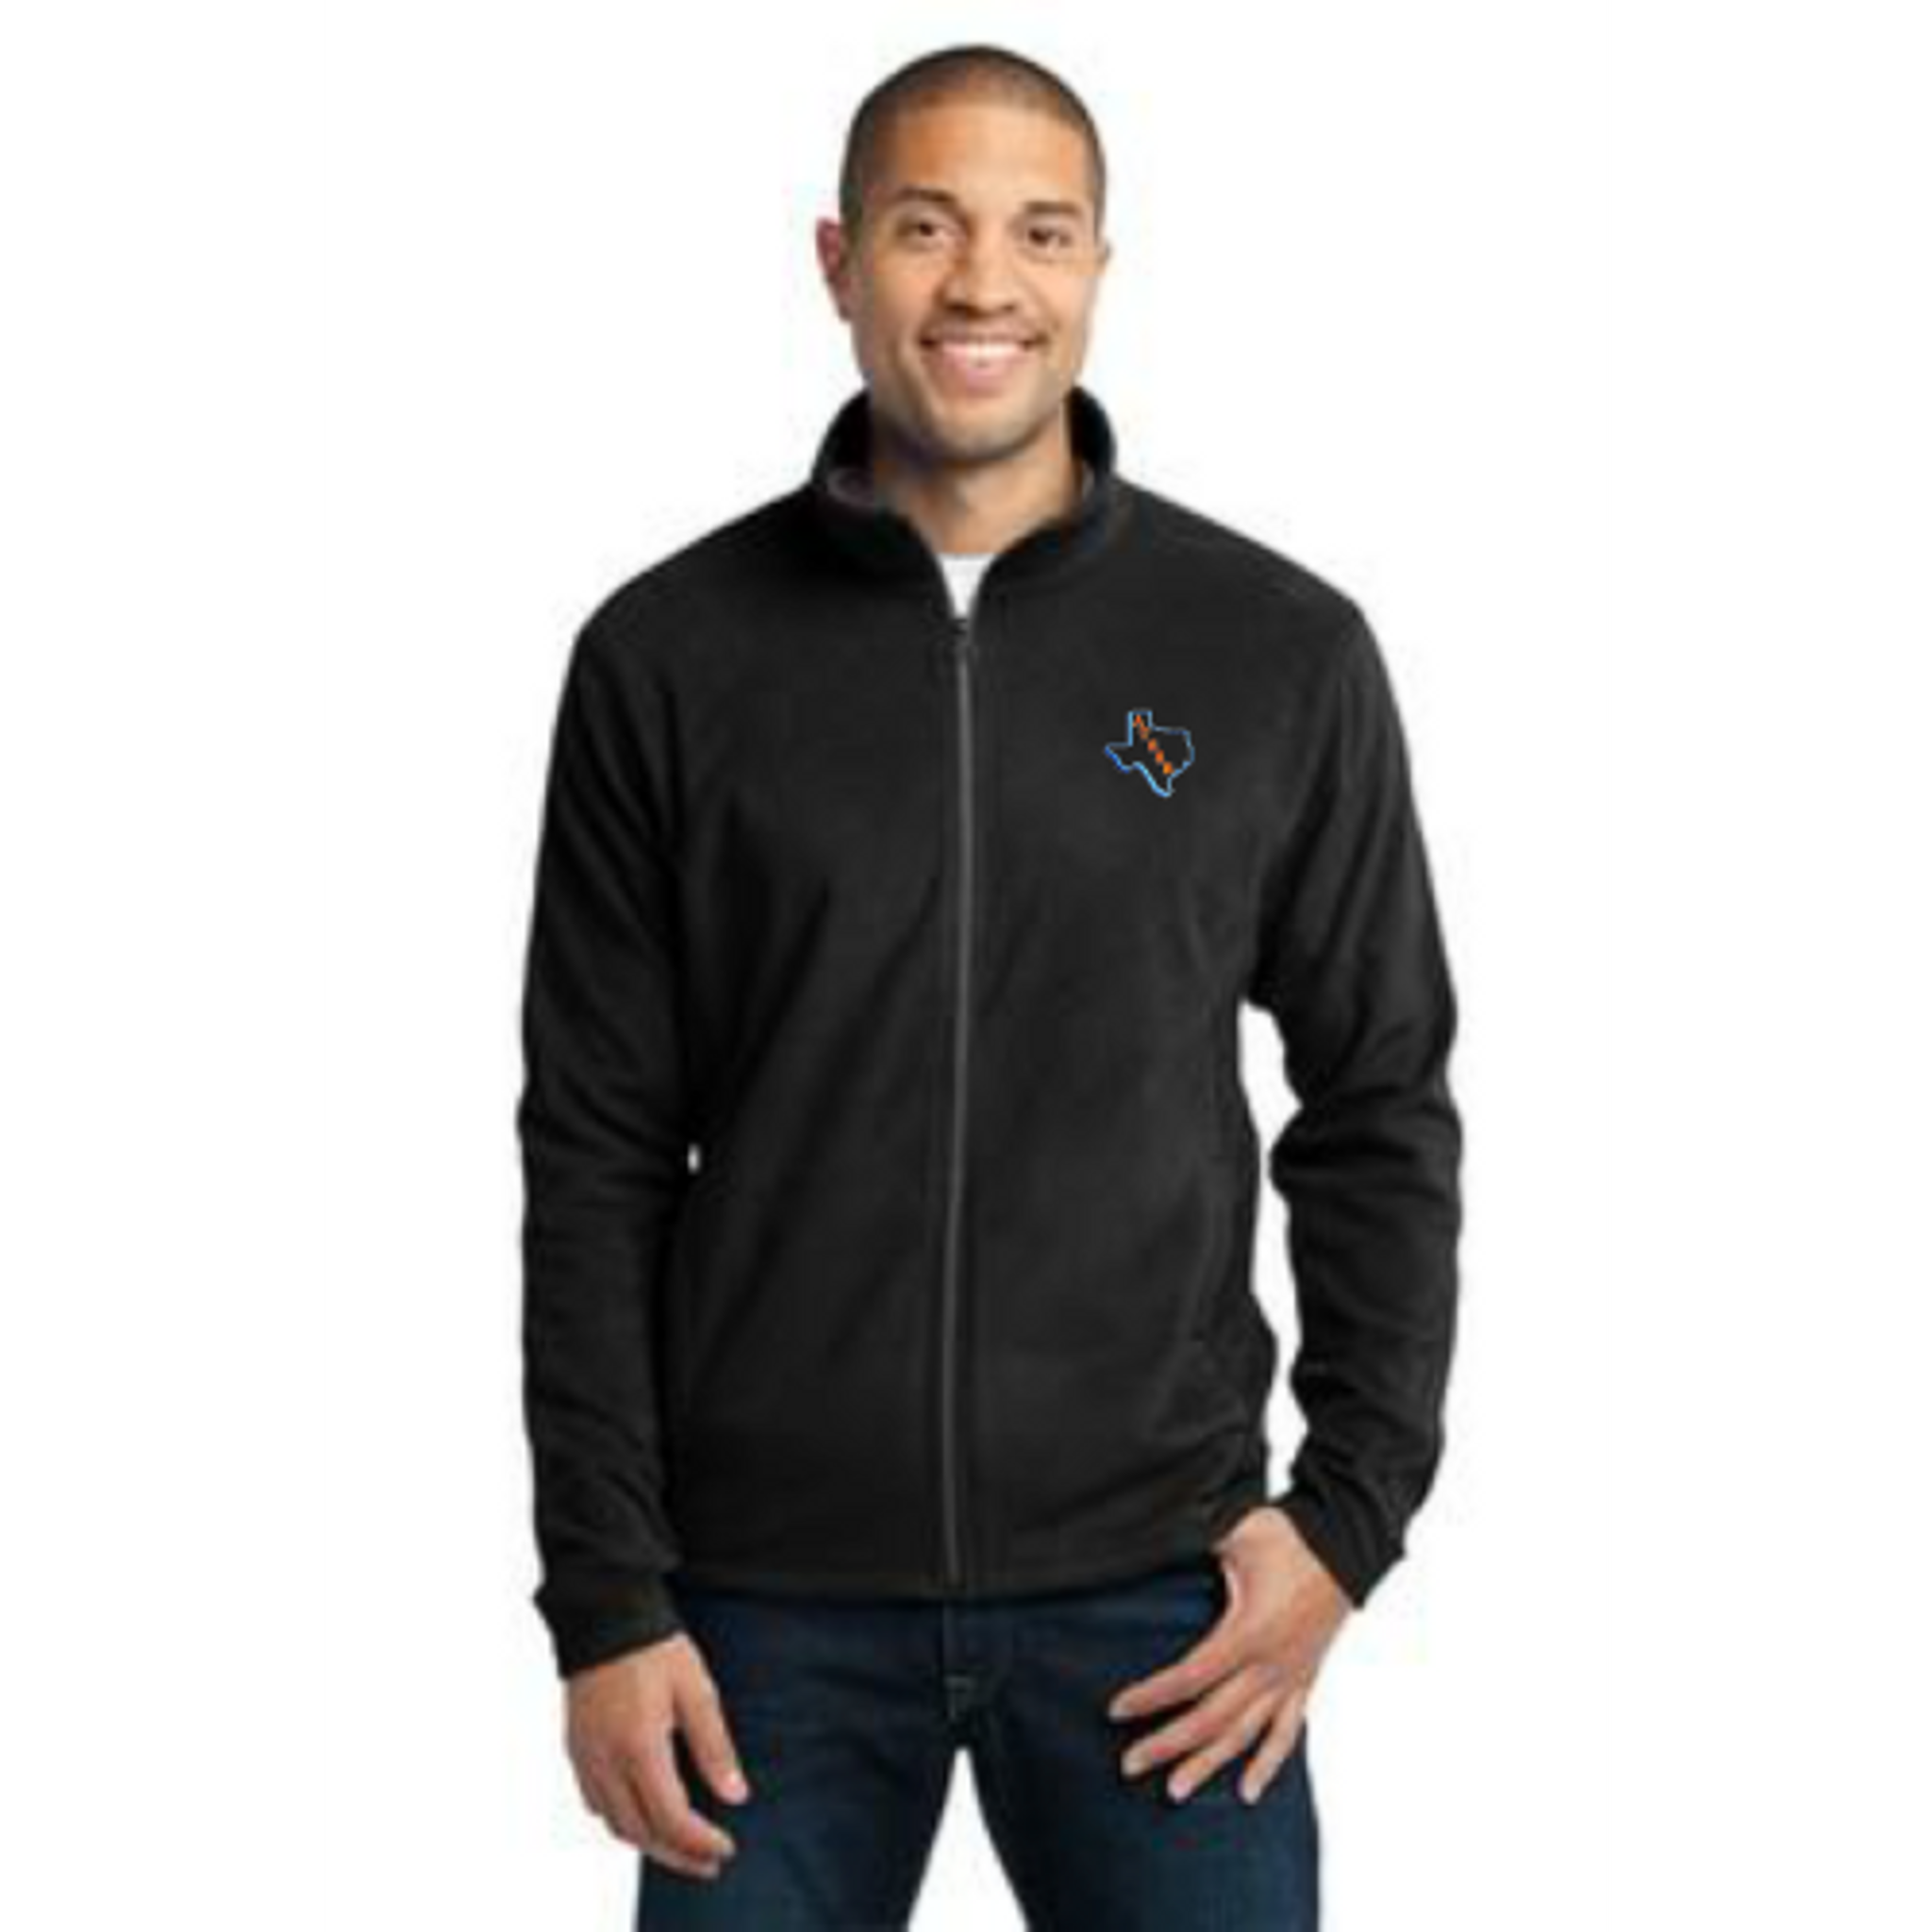 ATSSB Men's Black Microfleece Jacket